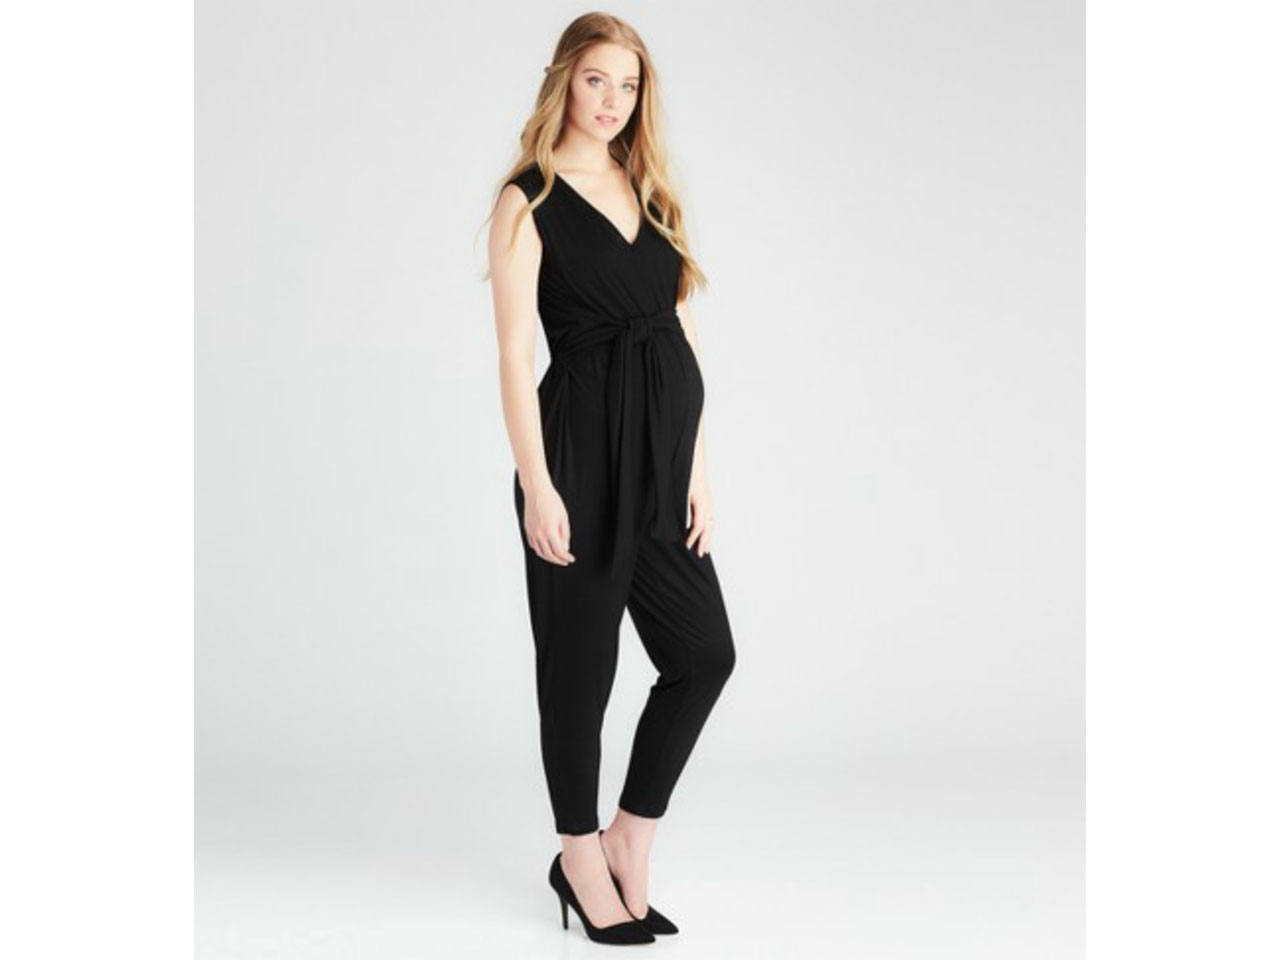 A pregnant woman wearing a black maternity jumpsuit